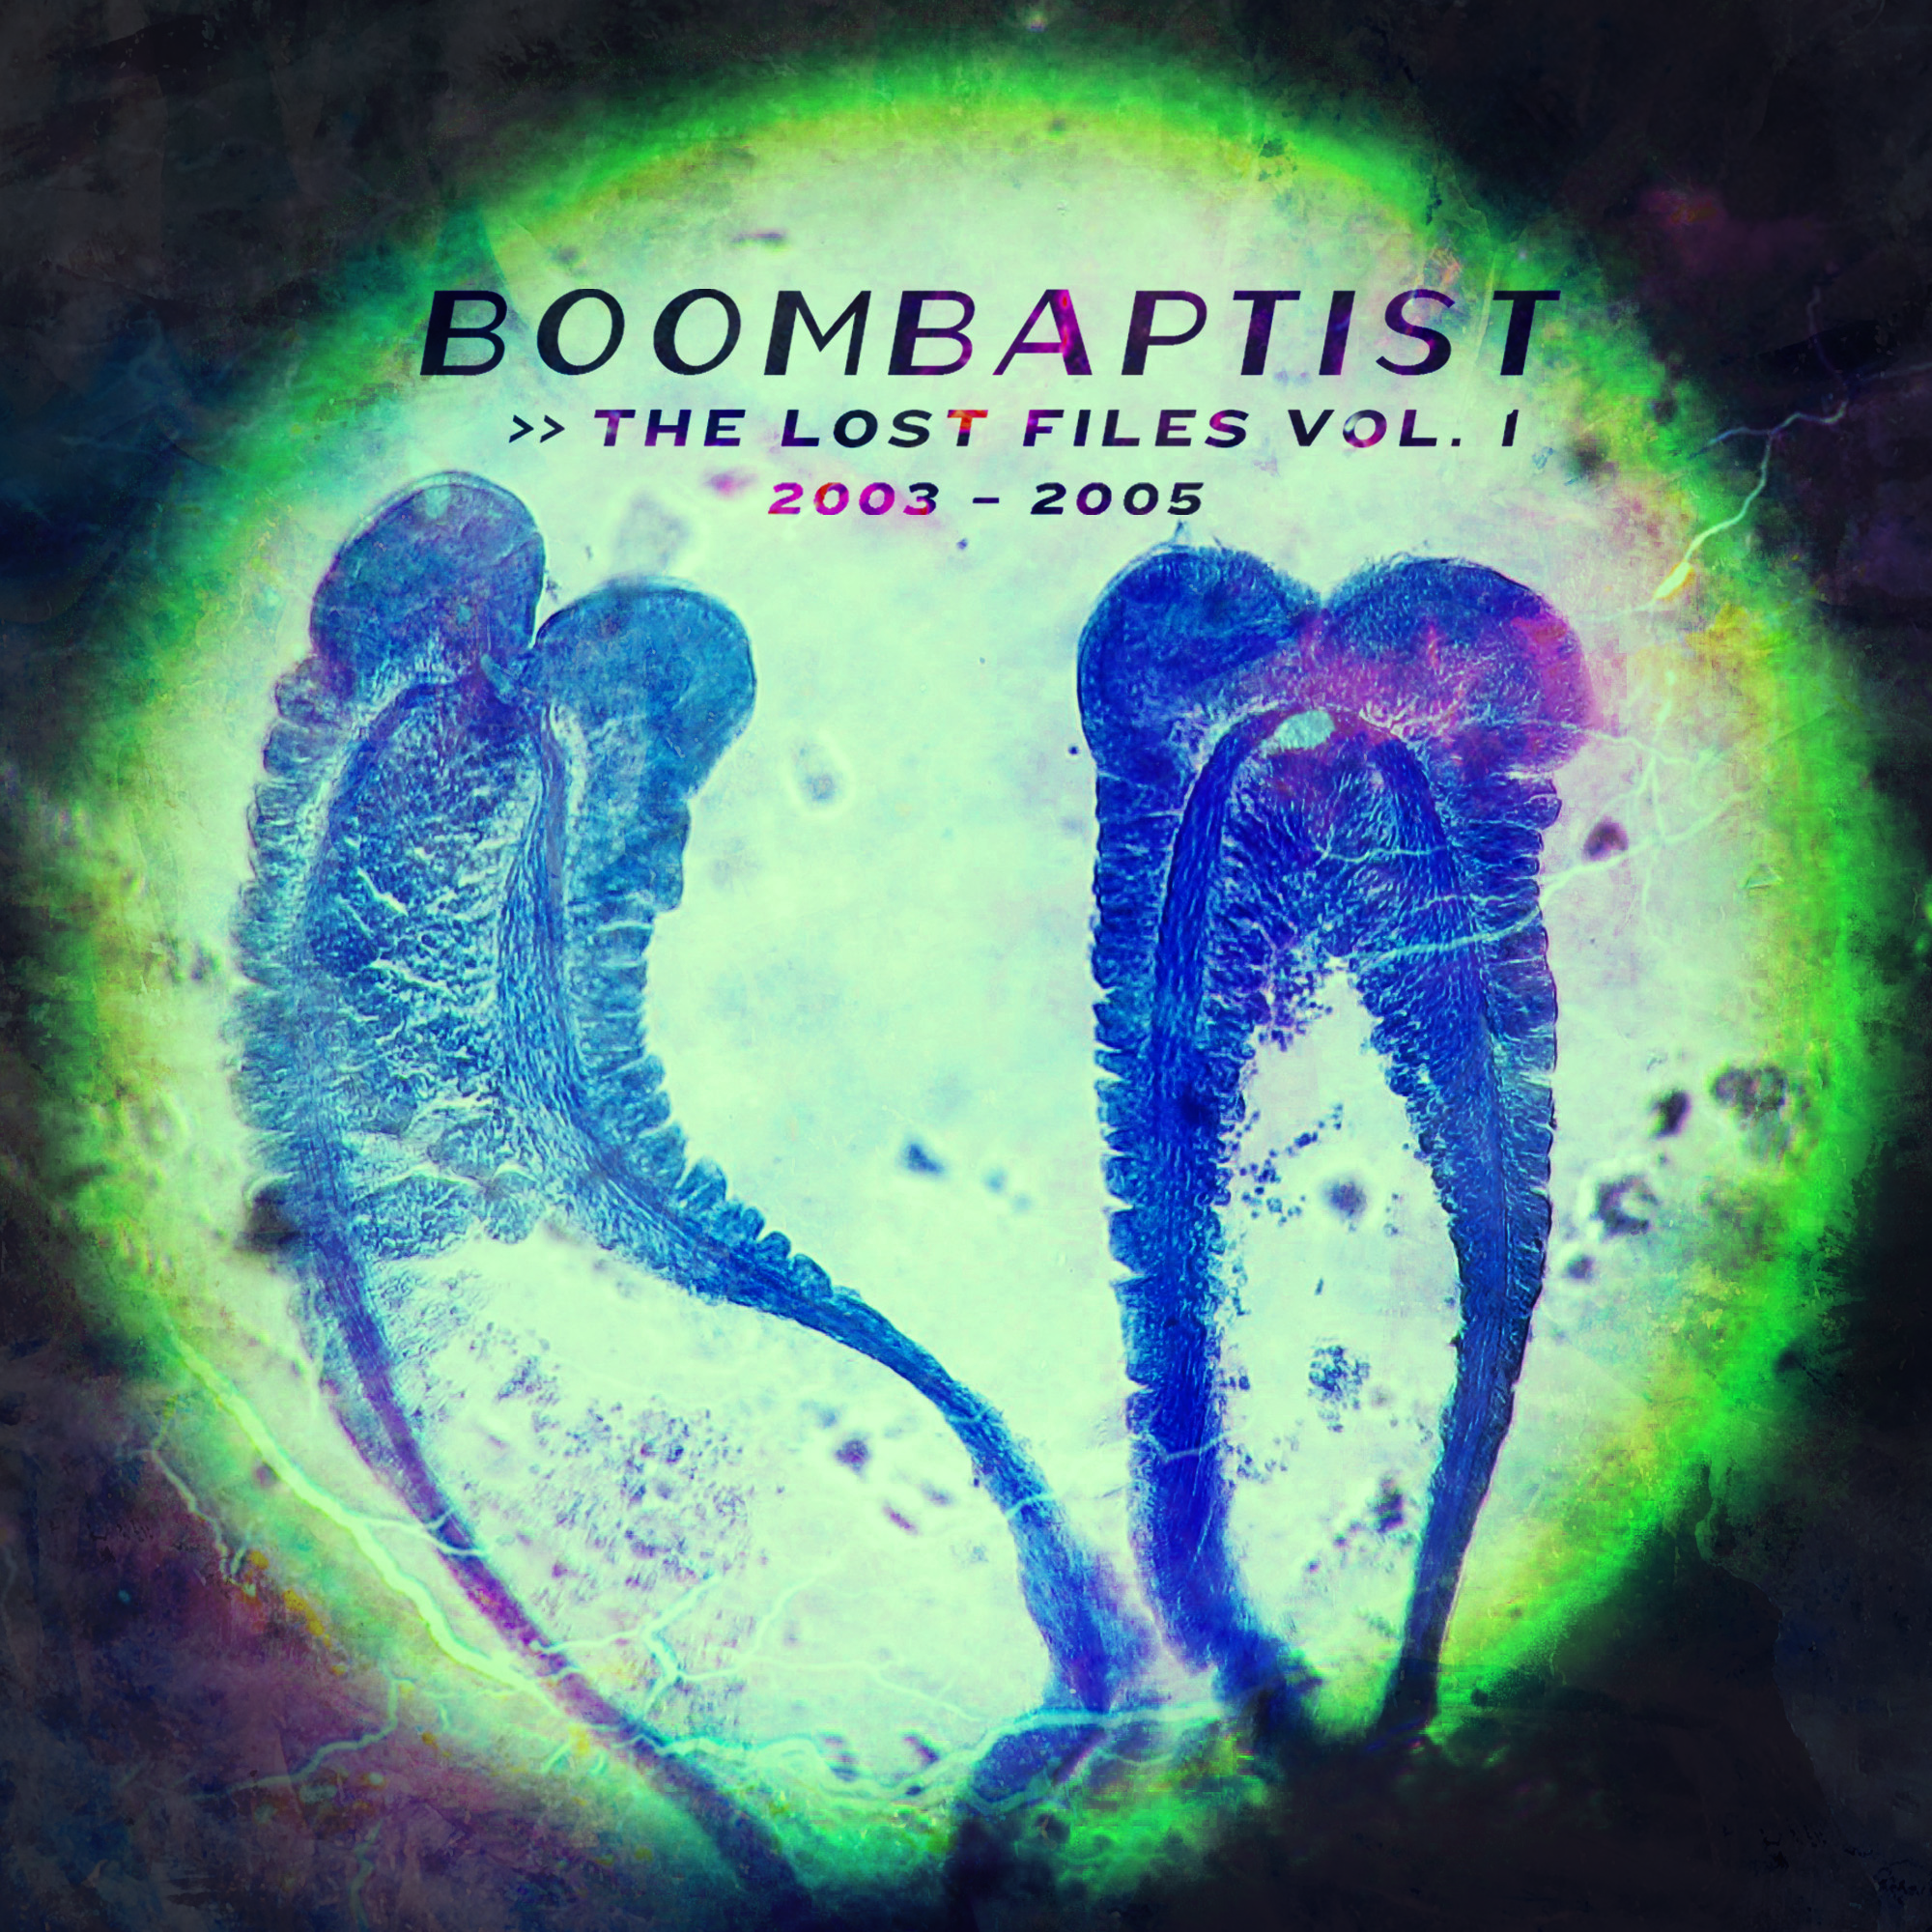 Free Download: BoomBaptist – The Lost Files Vol. 1 (2003-2005)